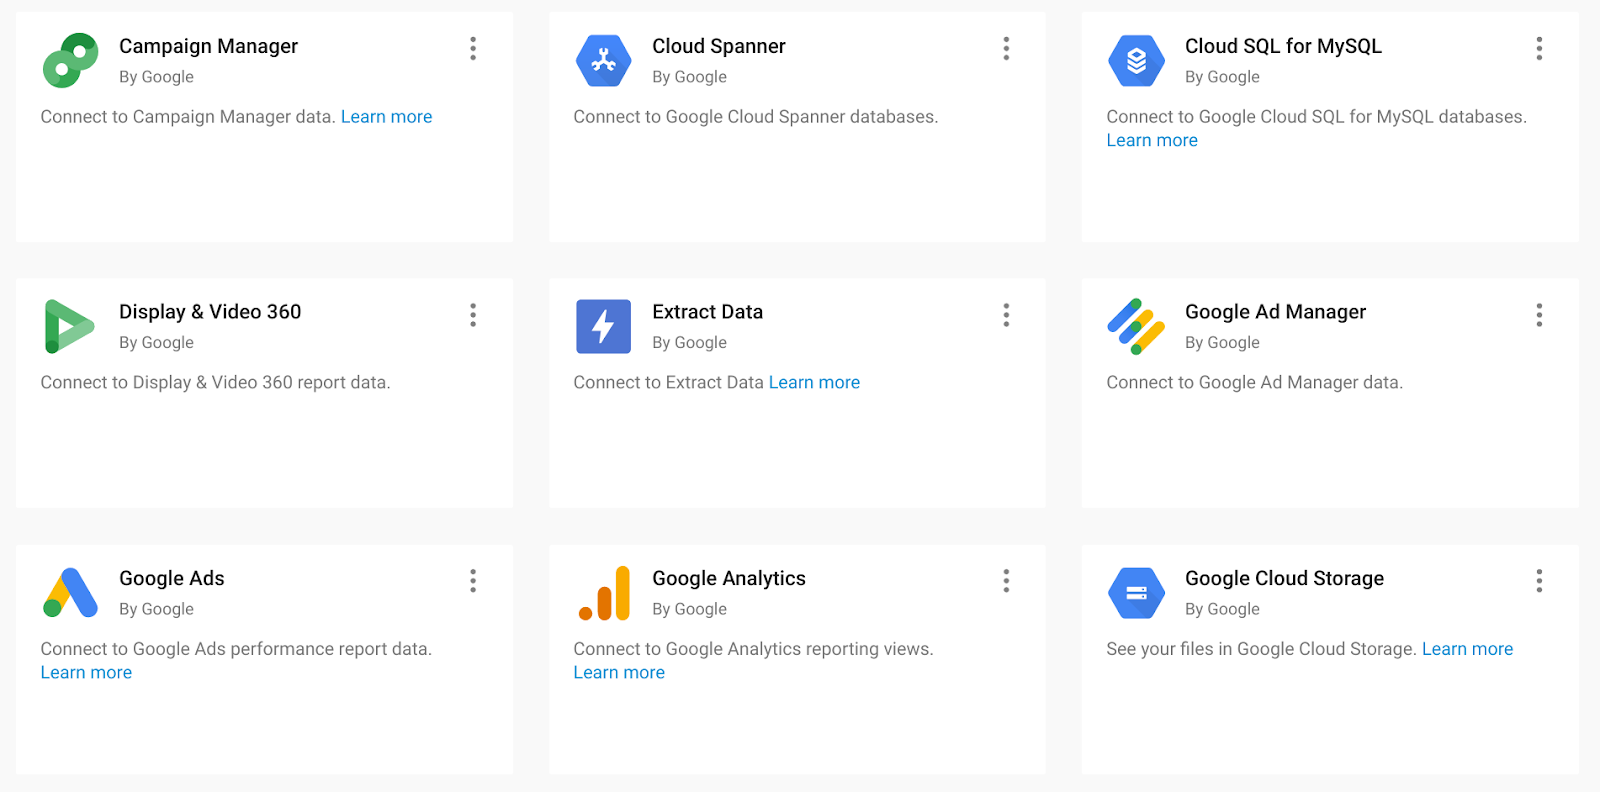 Google Data Studio has many connectors available